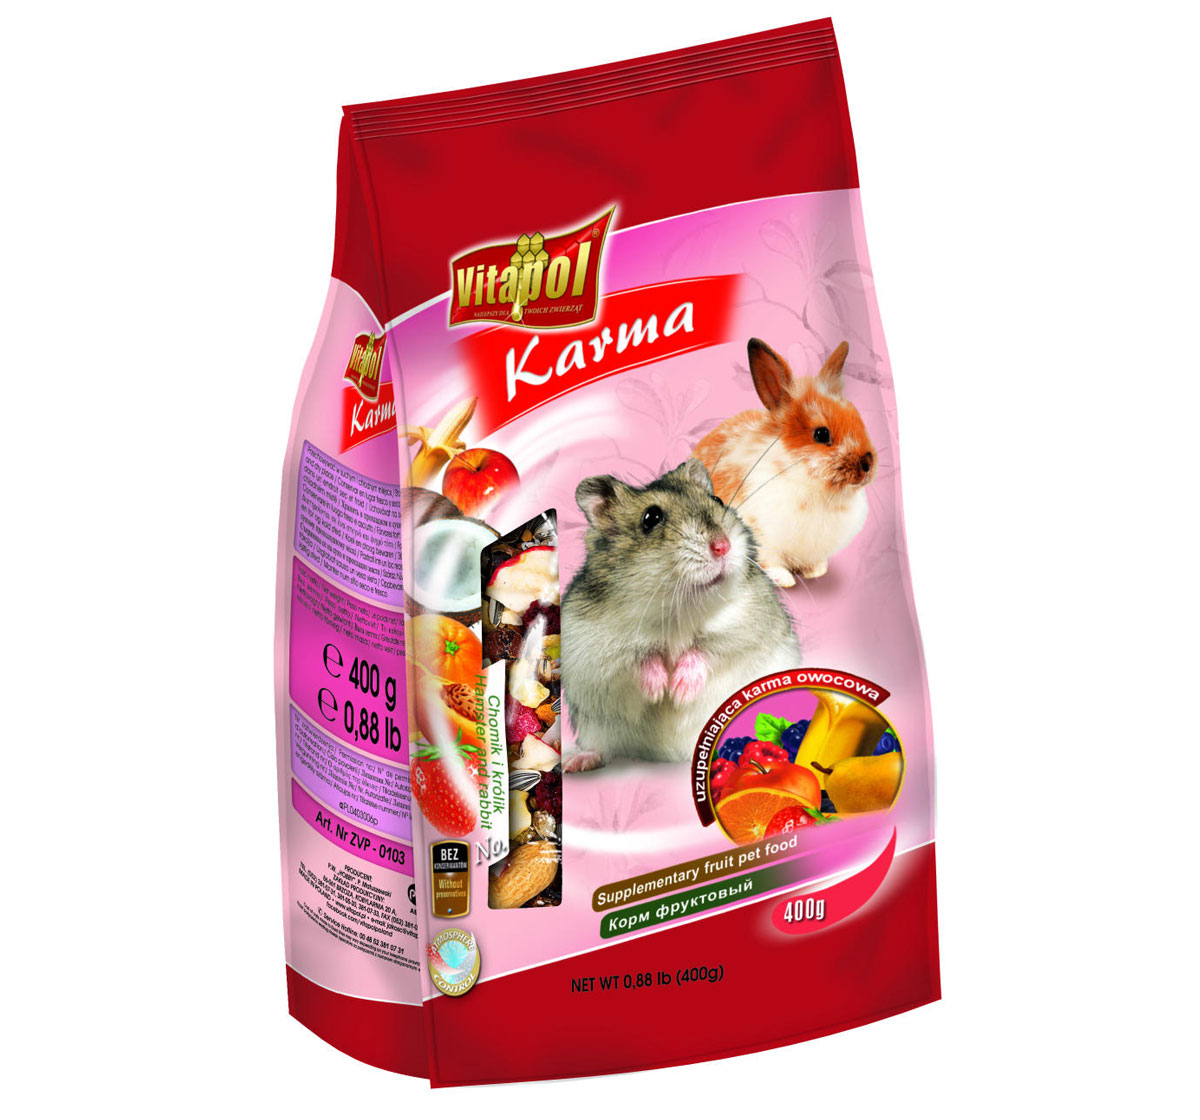 Vitapol Fruit Food For Hamster Food -400 gms